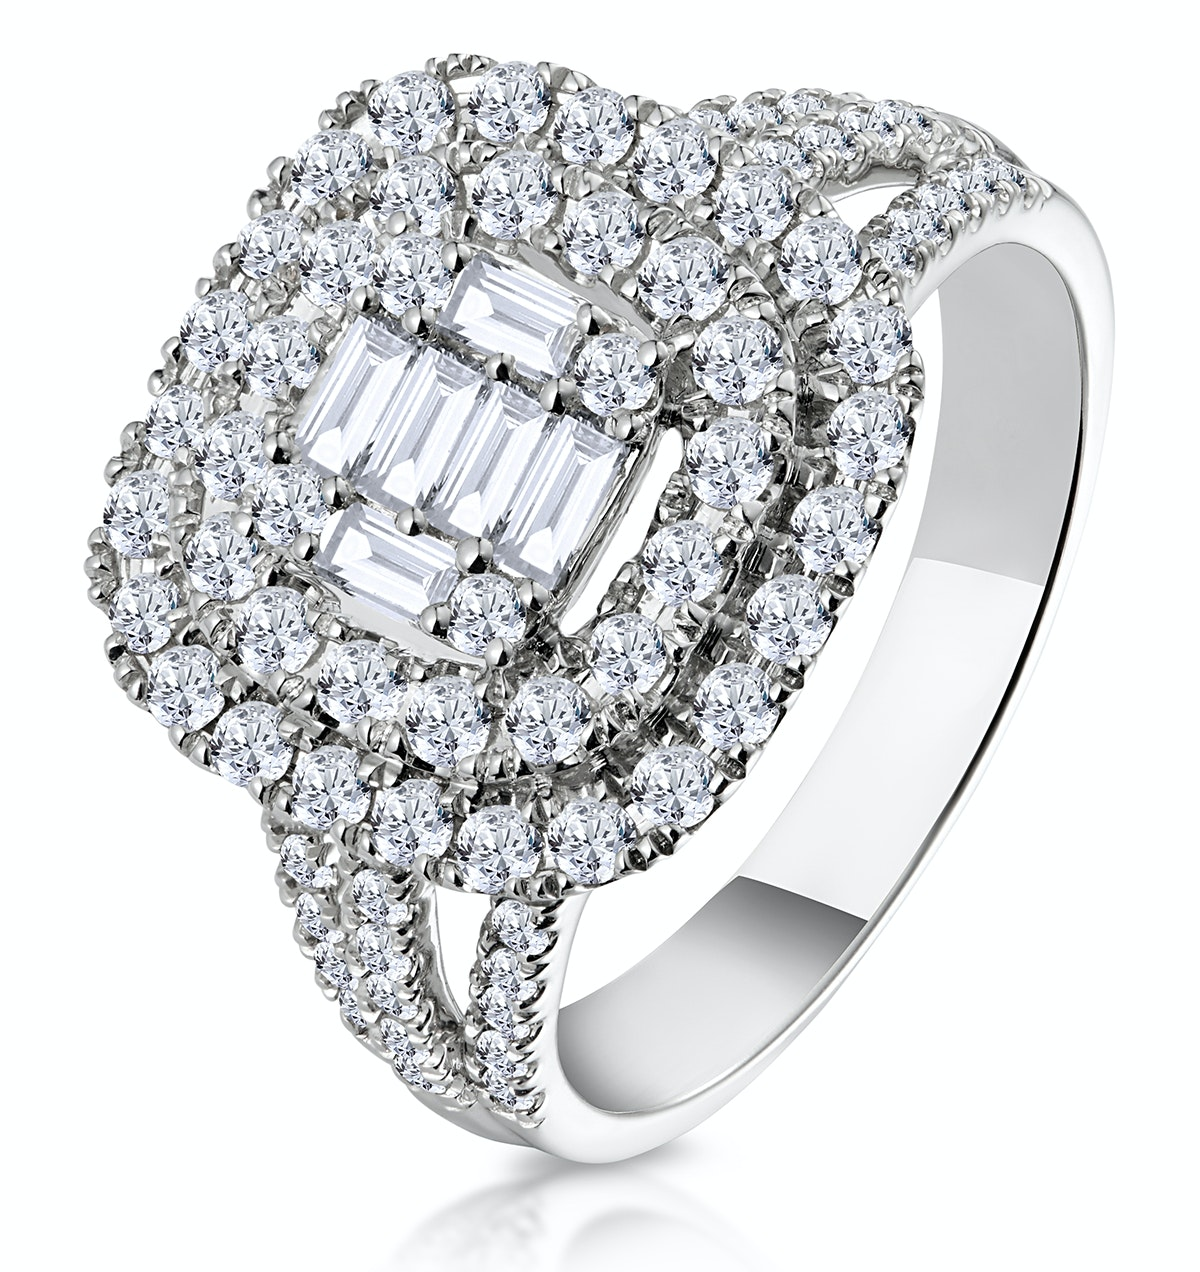 1.25ct Asteria Collection Double Halo Diamond Ring in 18K White Gold